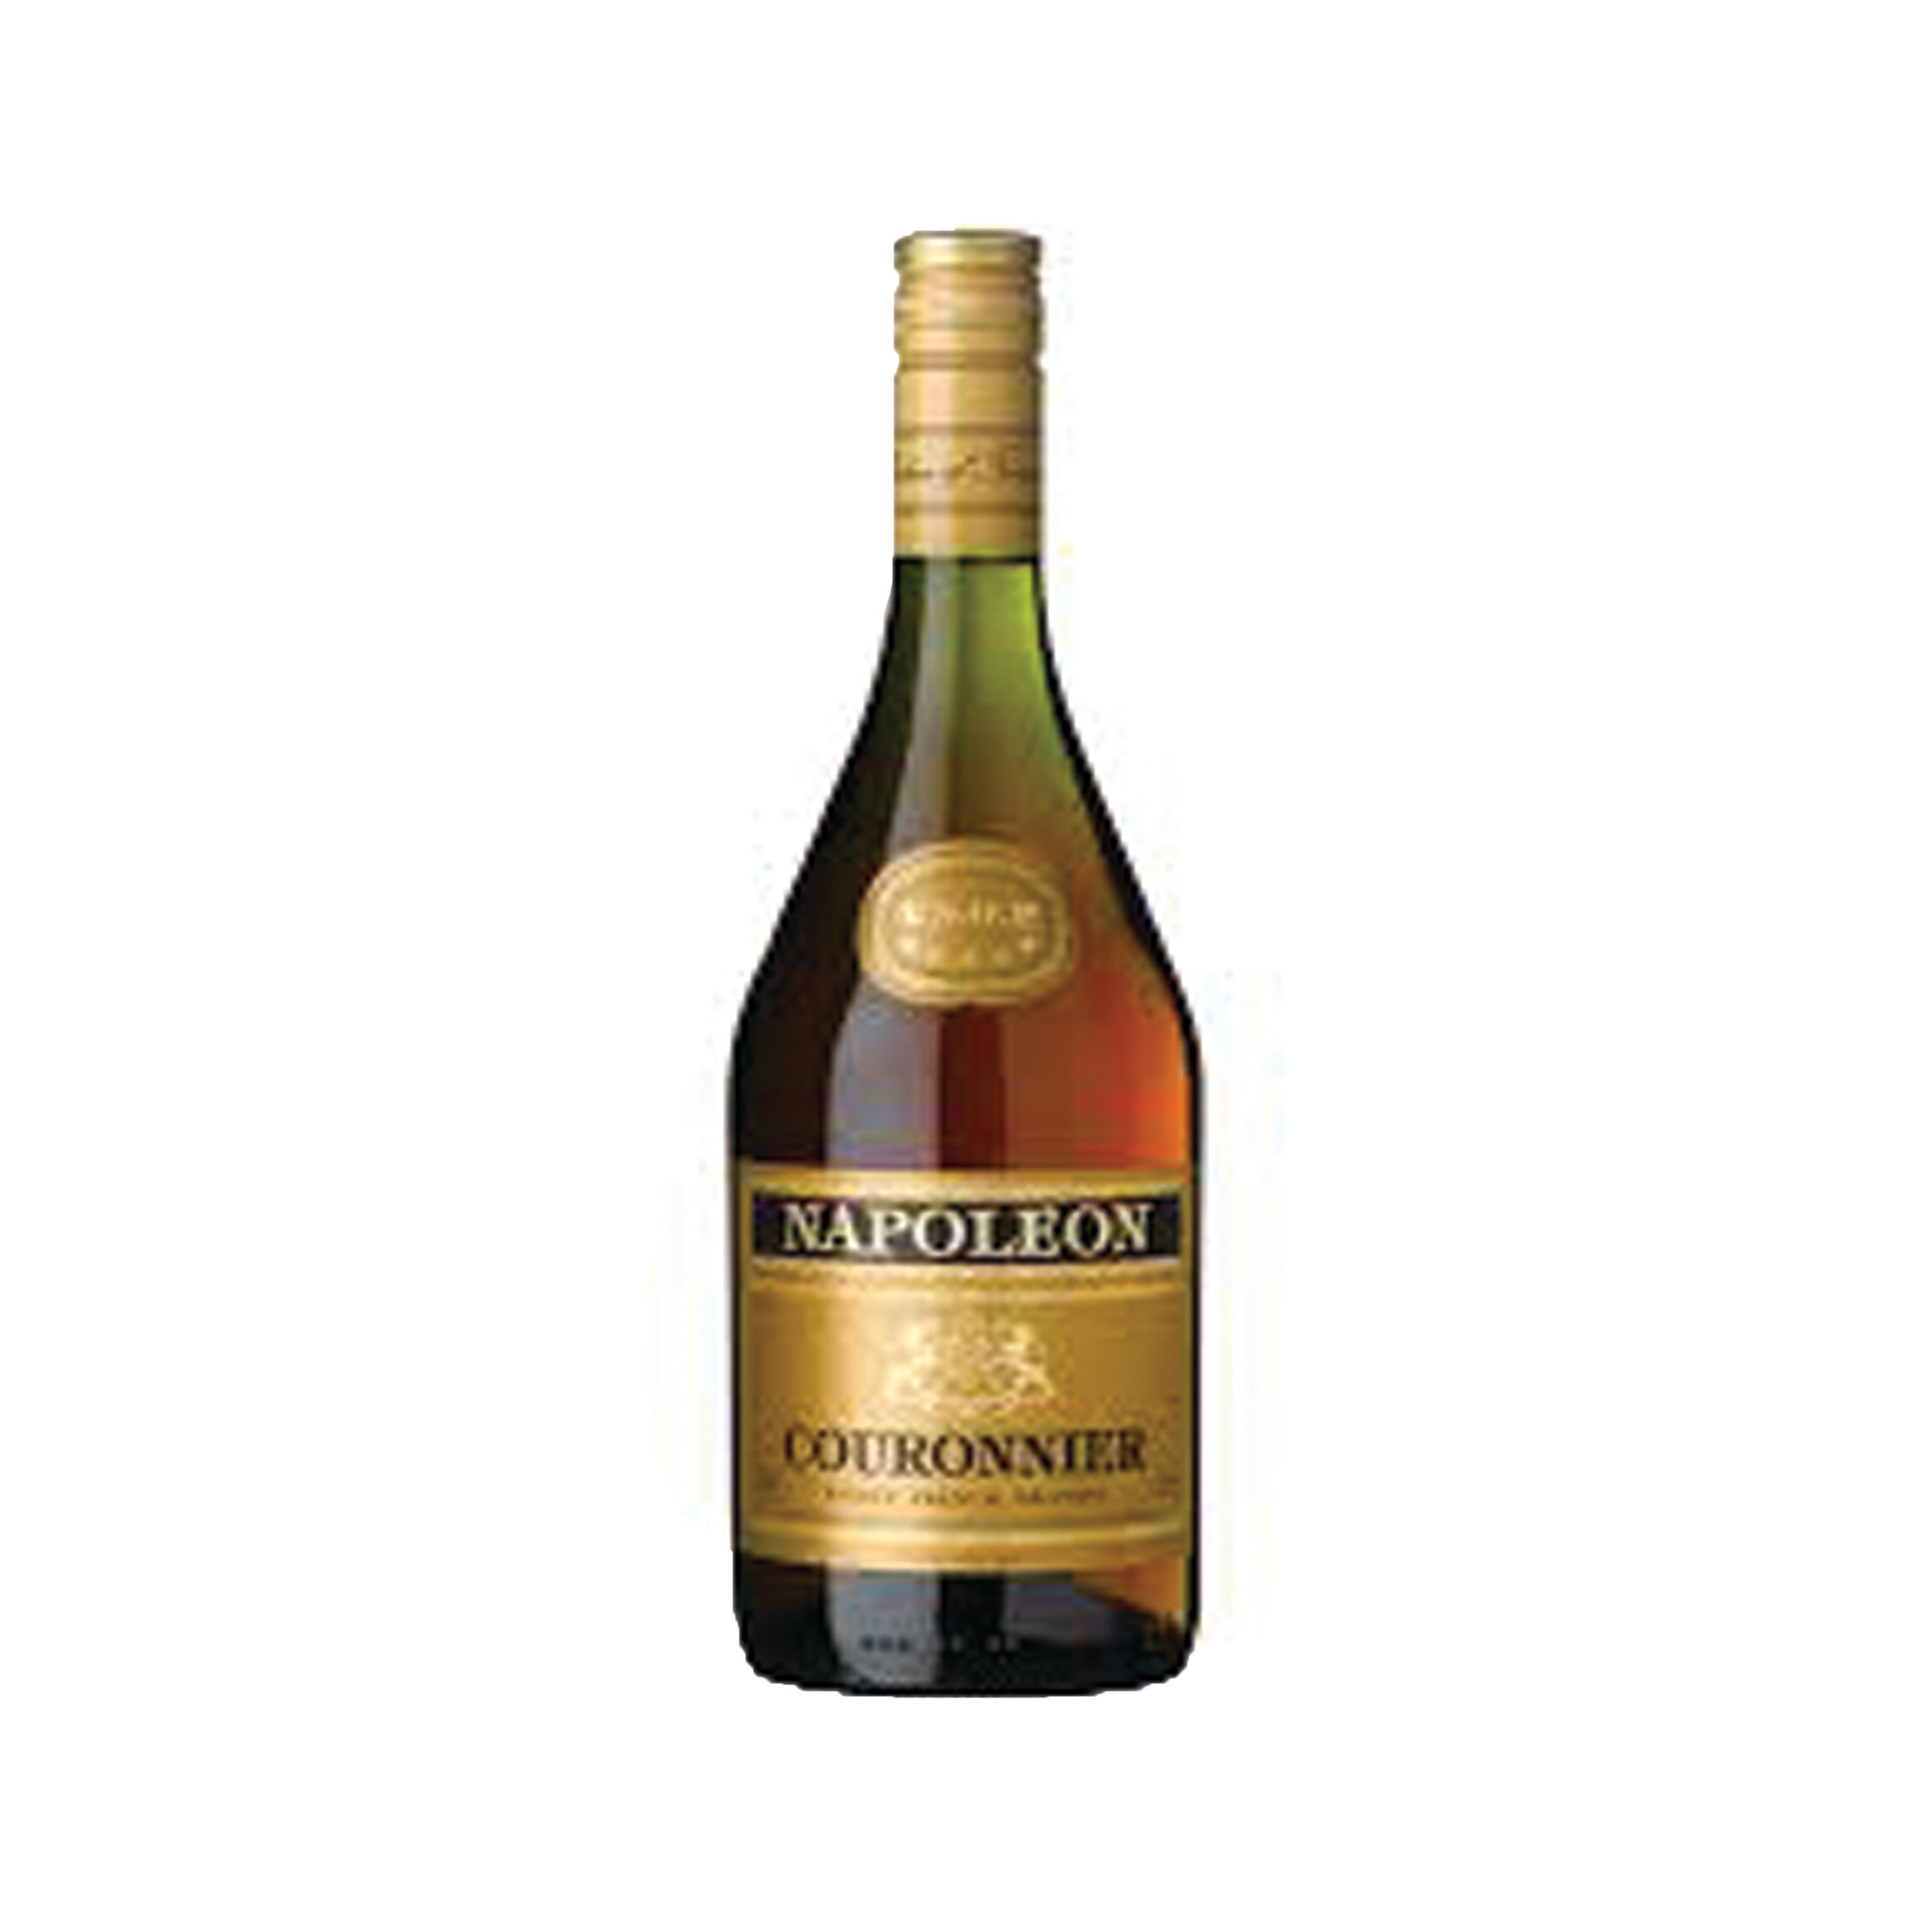 Napoleon Couronnier Brandy 750ml